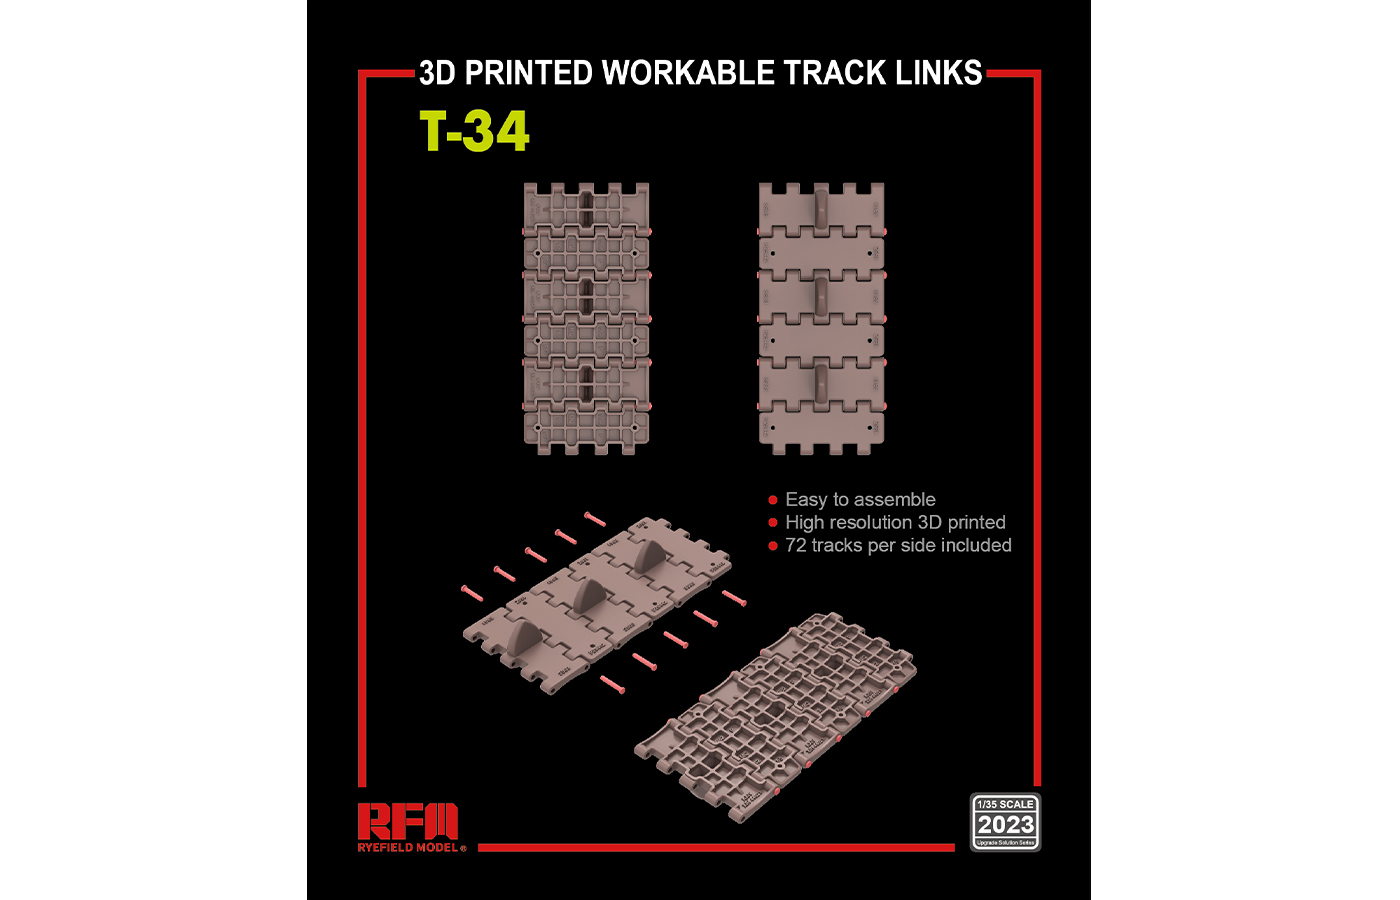 RM-5023  T-34  3D PRINTED WORKABLE TRACK LINKS